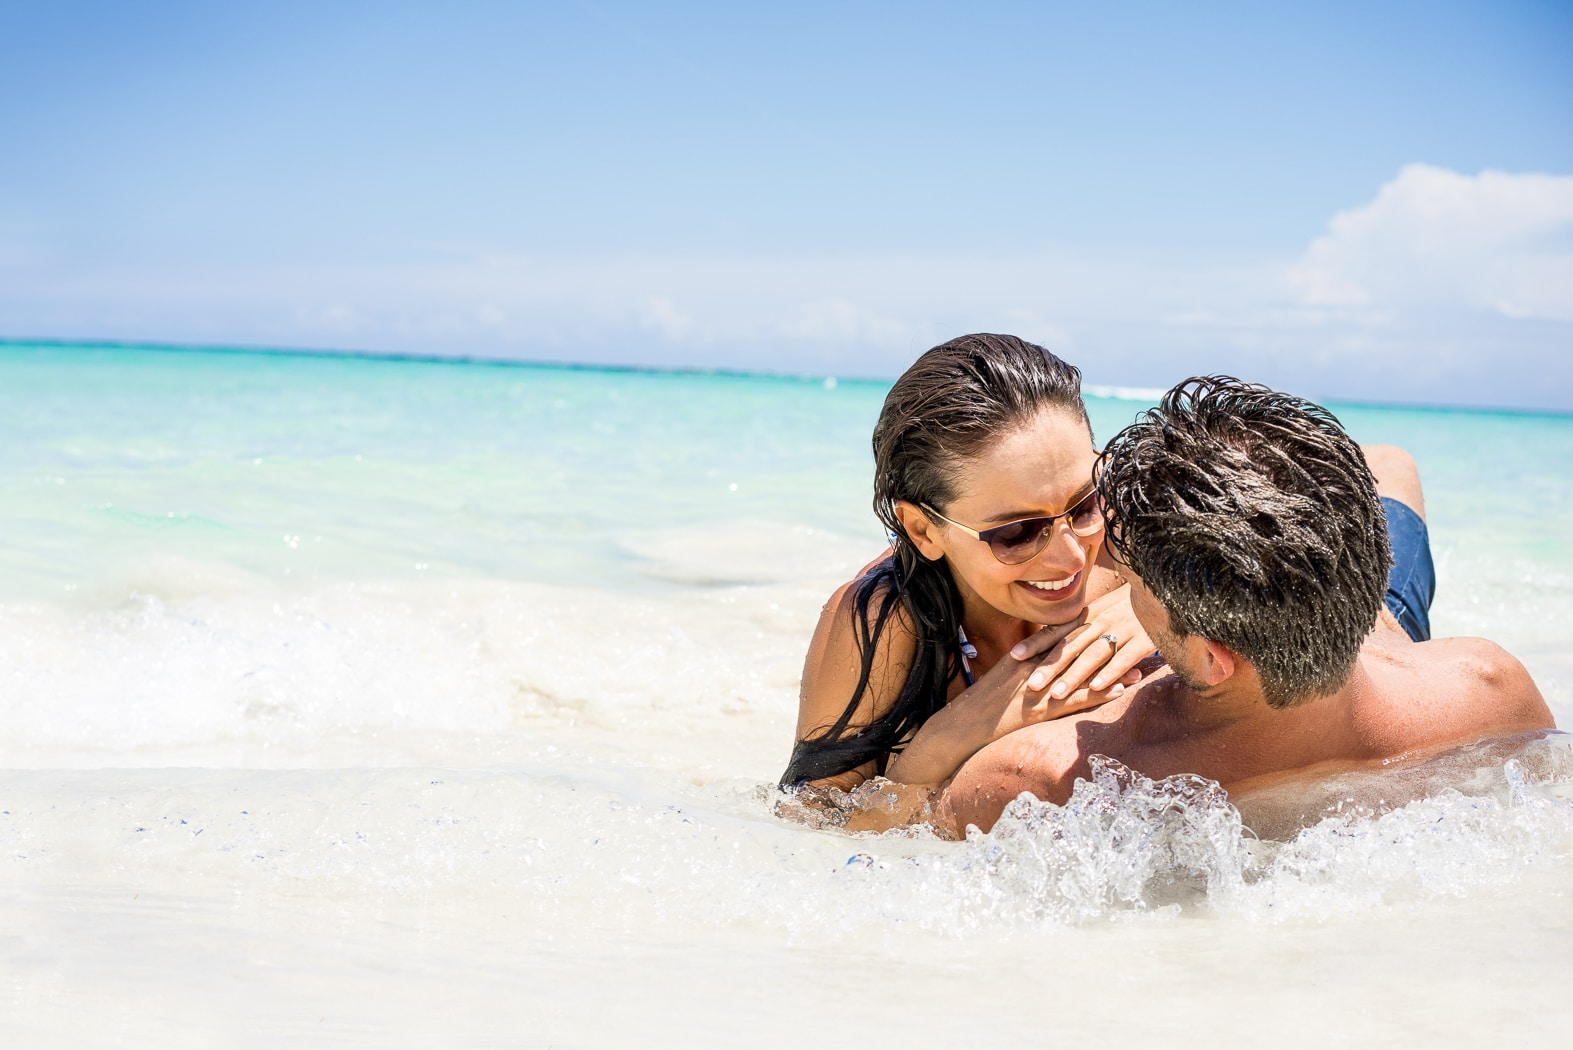 Current Specials at Couples All-Inclusive Honeymoon Resorts